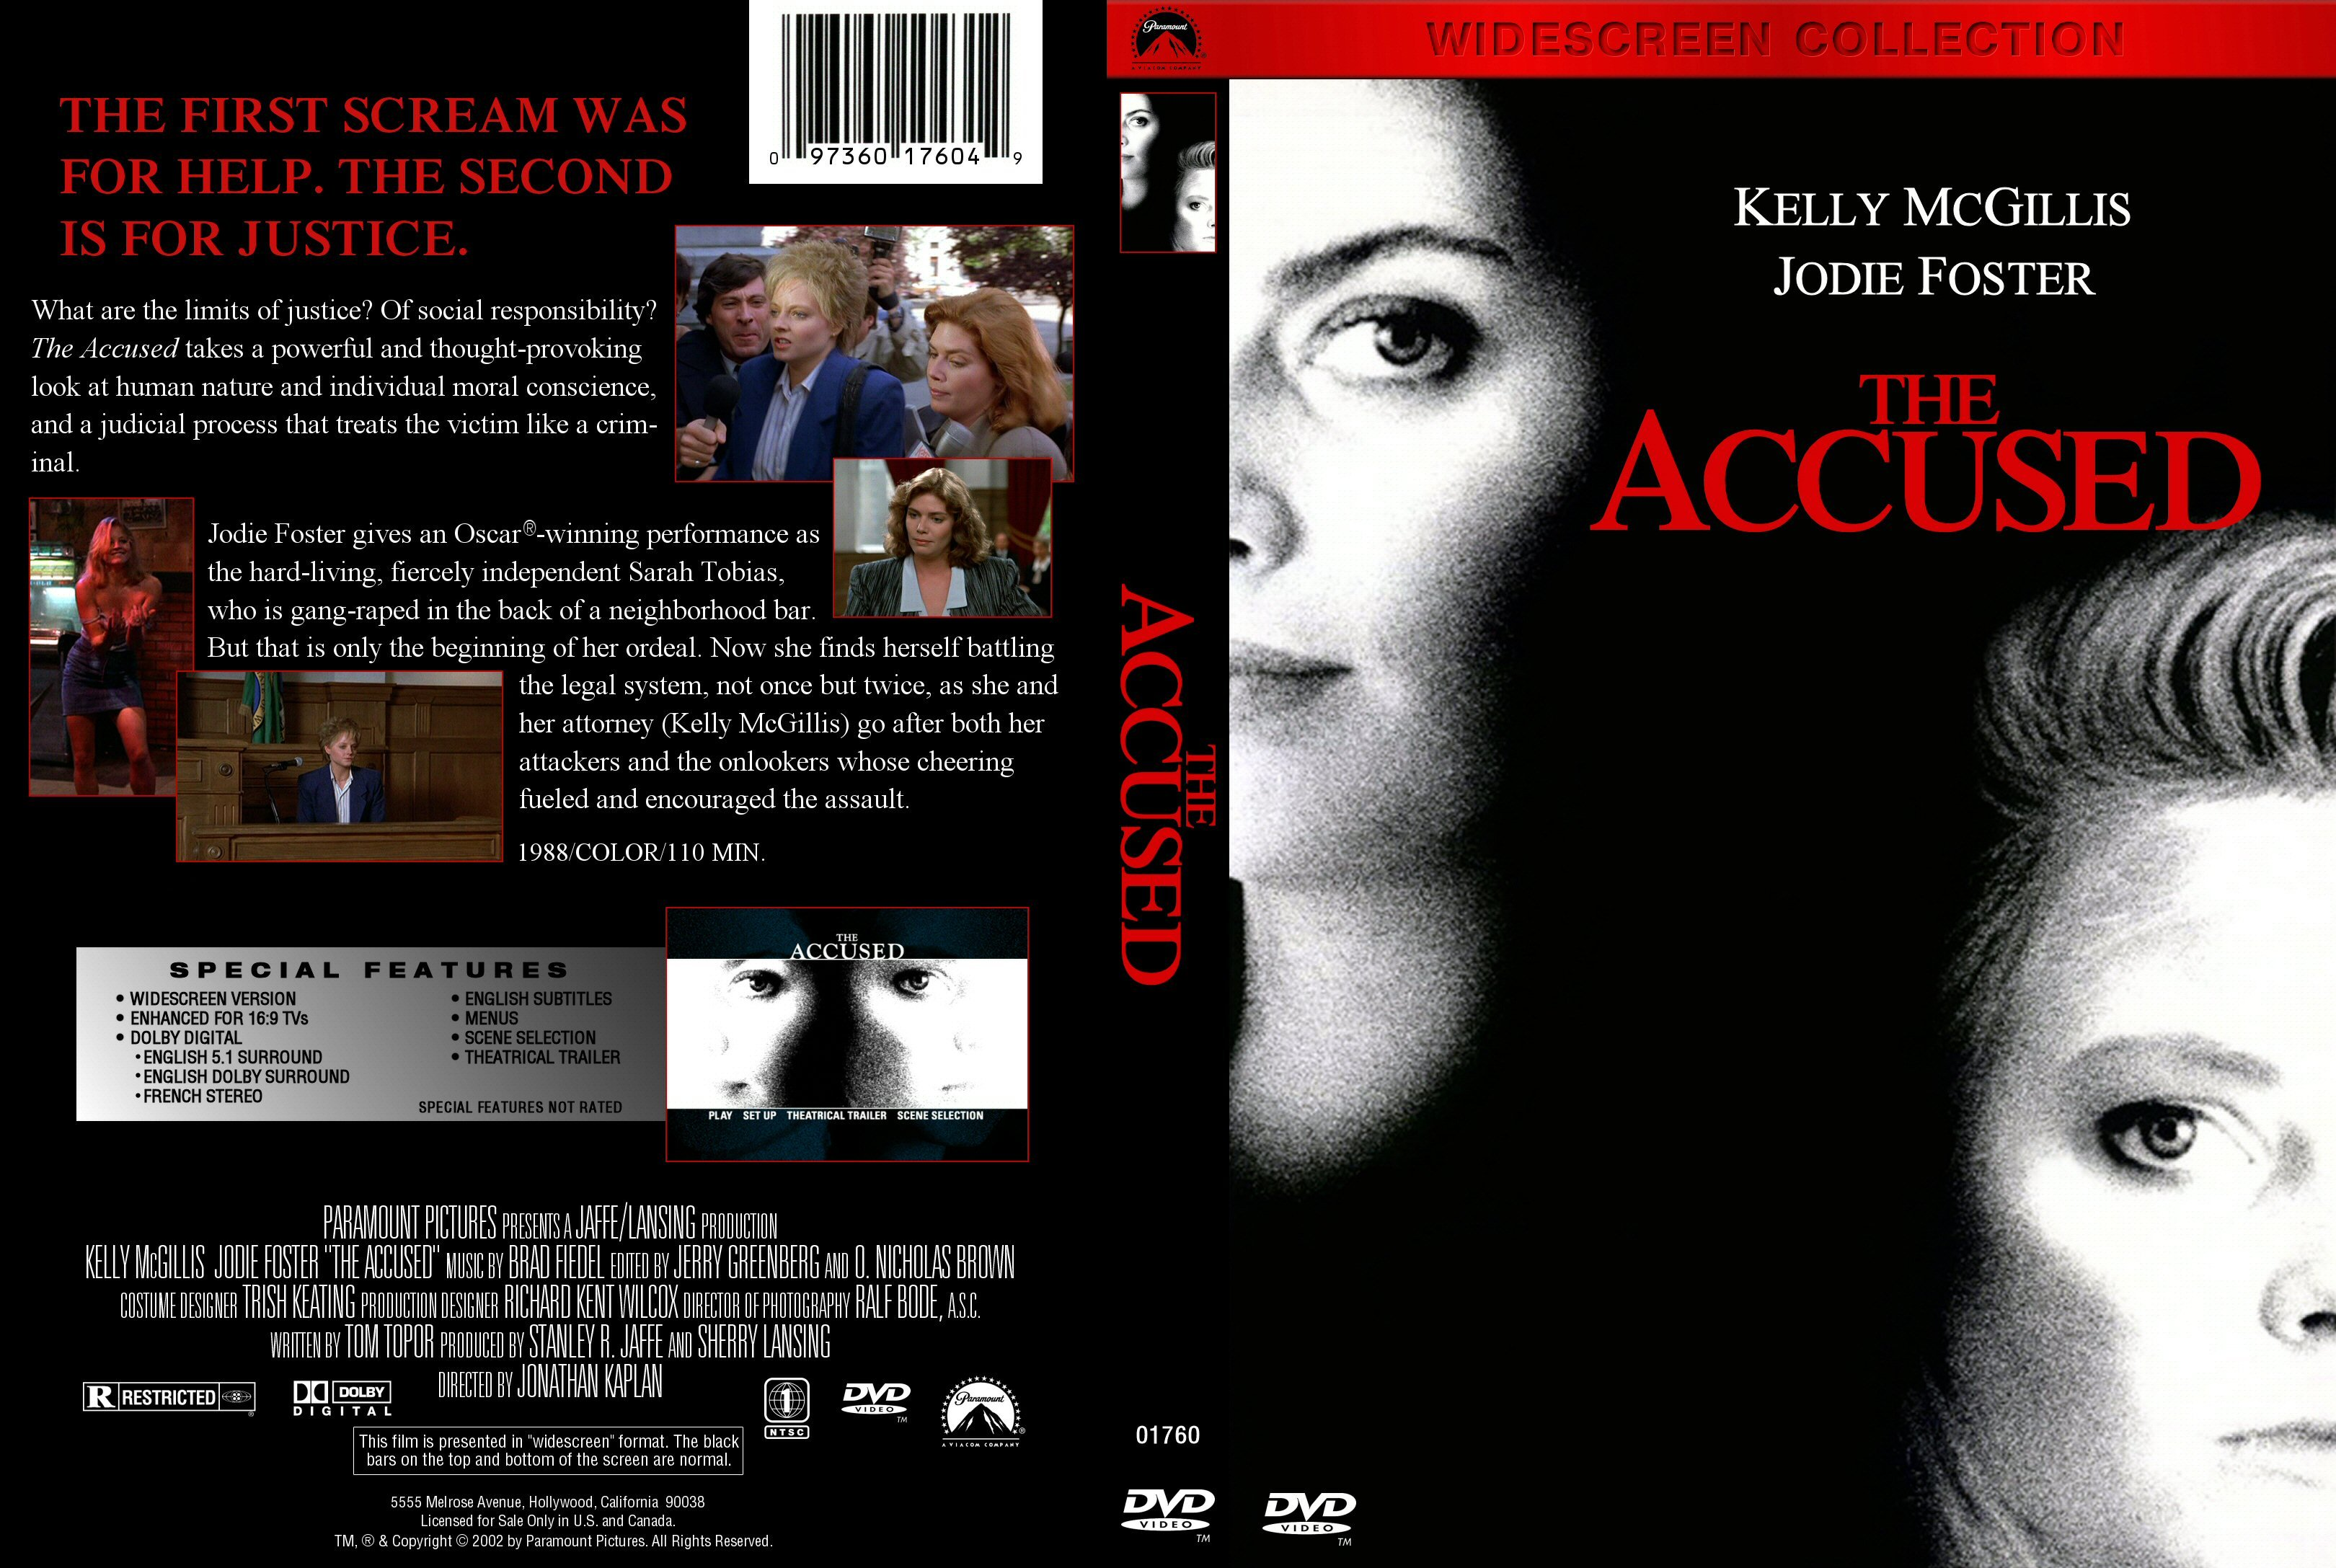 accused at 17 2009 poster accused images pictures photos size 3240 x 2175 pixels